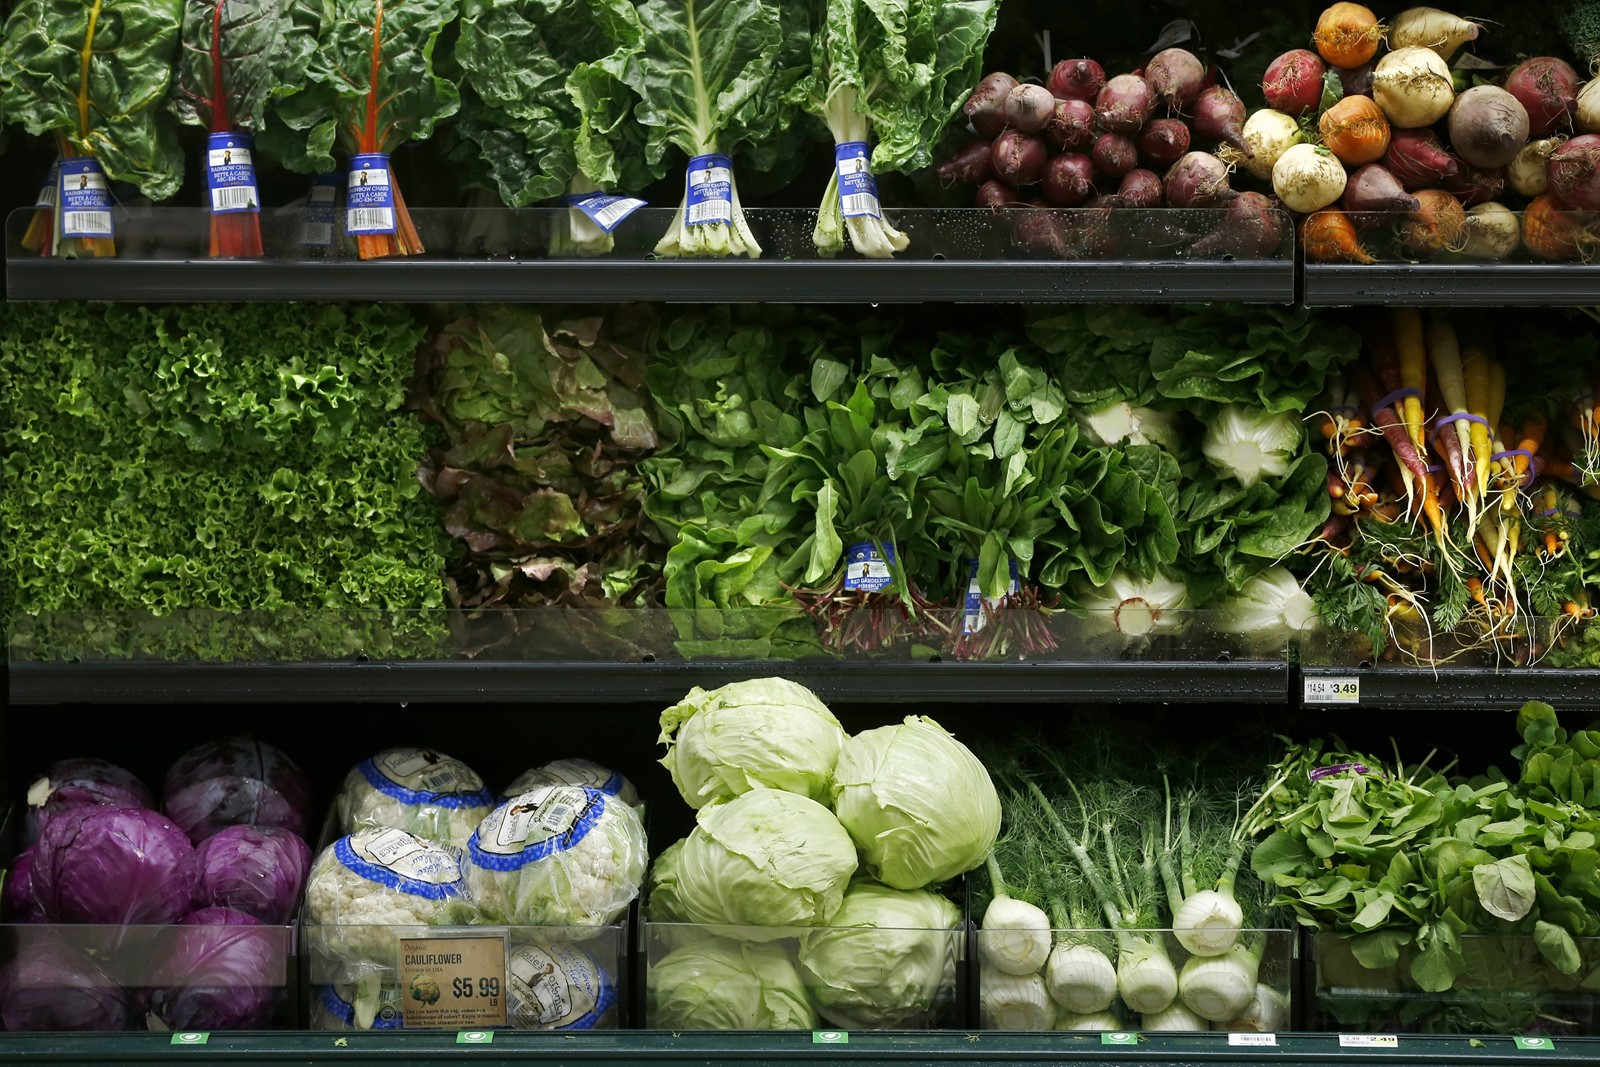 Healthy Food Rules Amended For SNAP